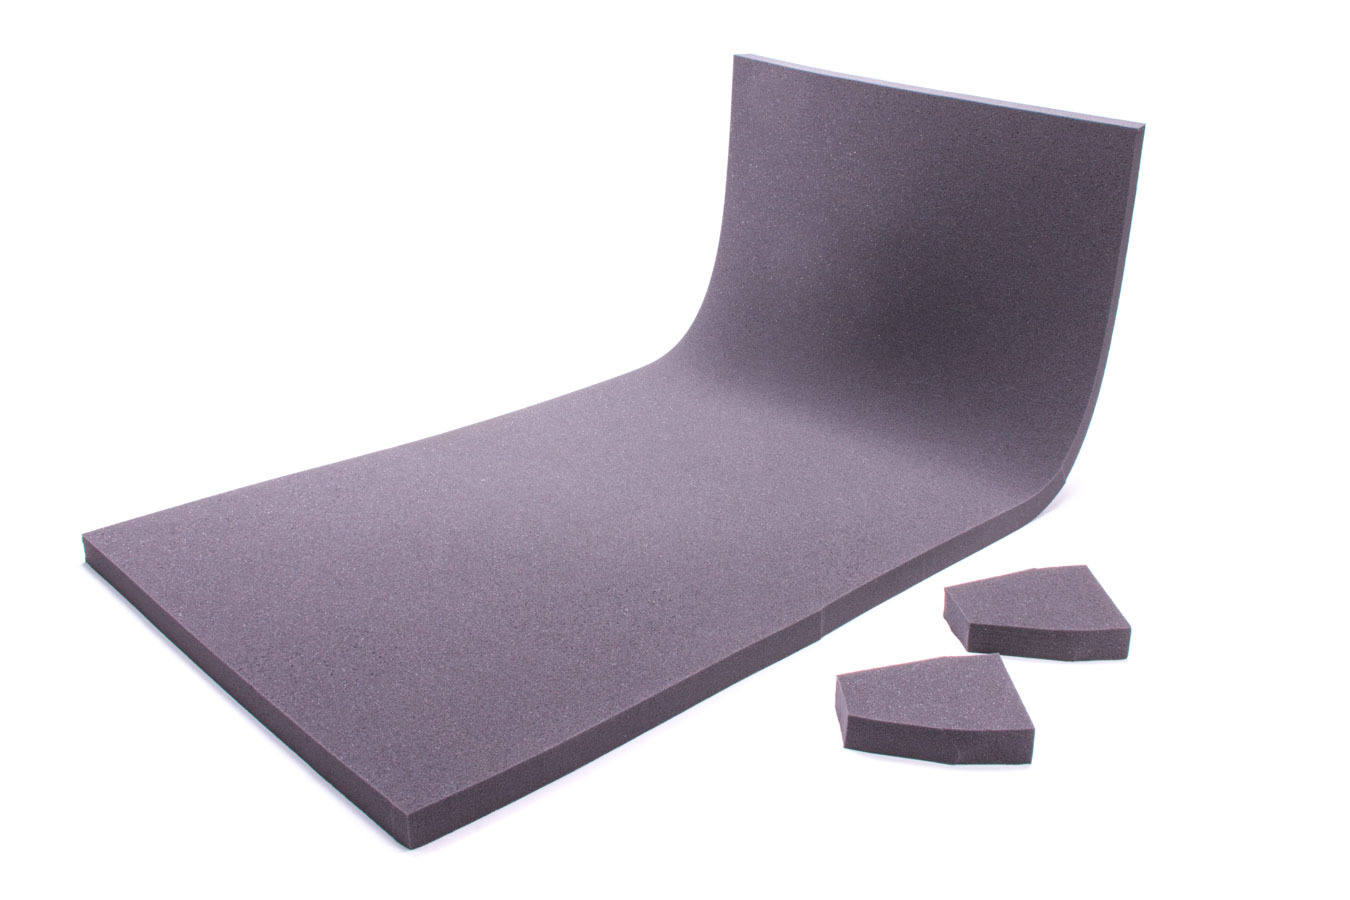 The Crash Pad 401810-812SAM Sheet Padding, 812 SAM, 40 x 18 x 1 in Thick, Gray, Each